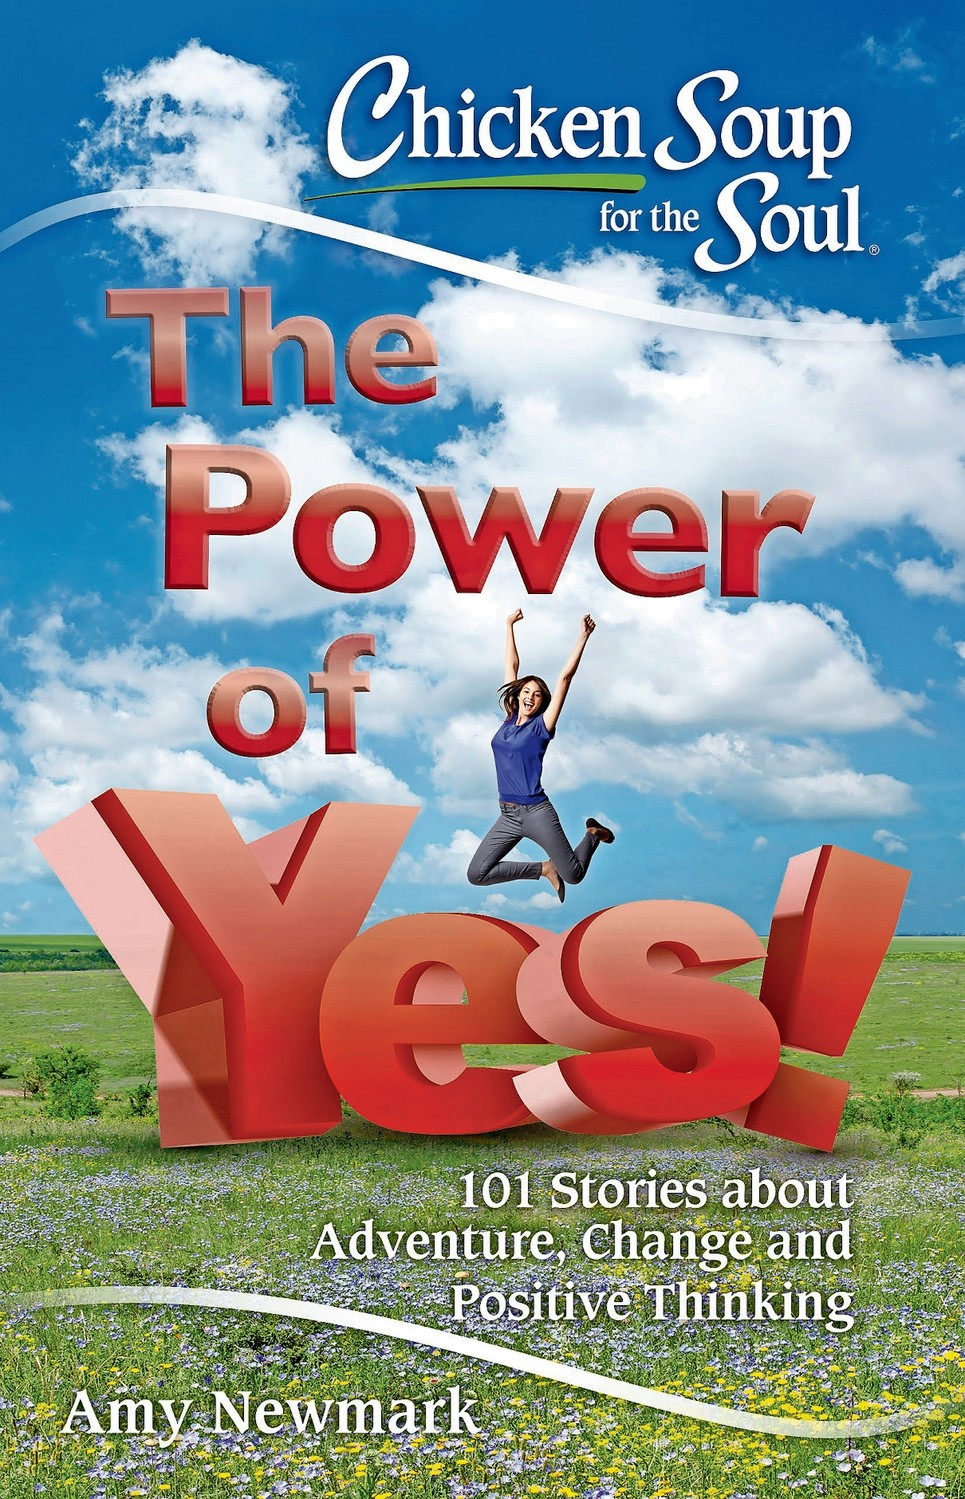 "The book ""Chicken Soup for the Soul: The Power of Yes!"" features Malverne resident Mary C.M. Phillips's story of overcoming her fears."